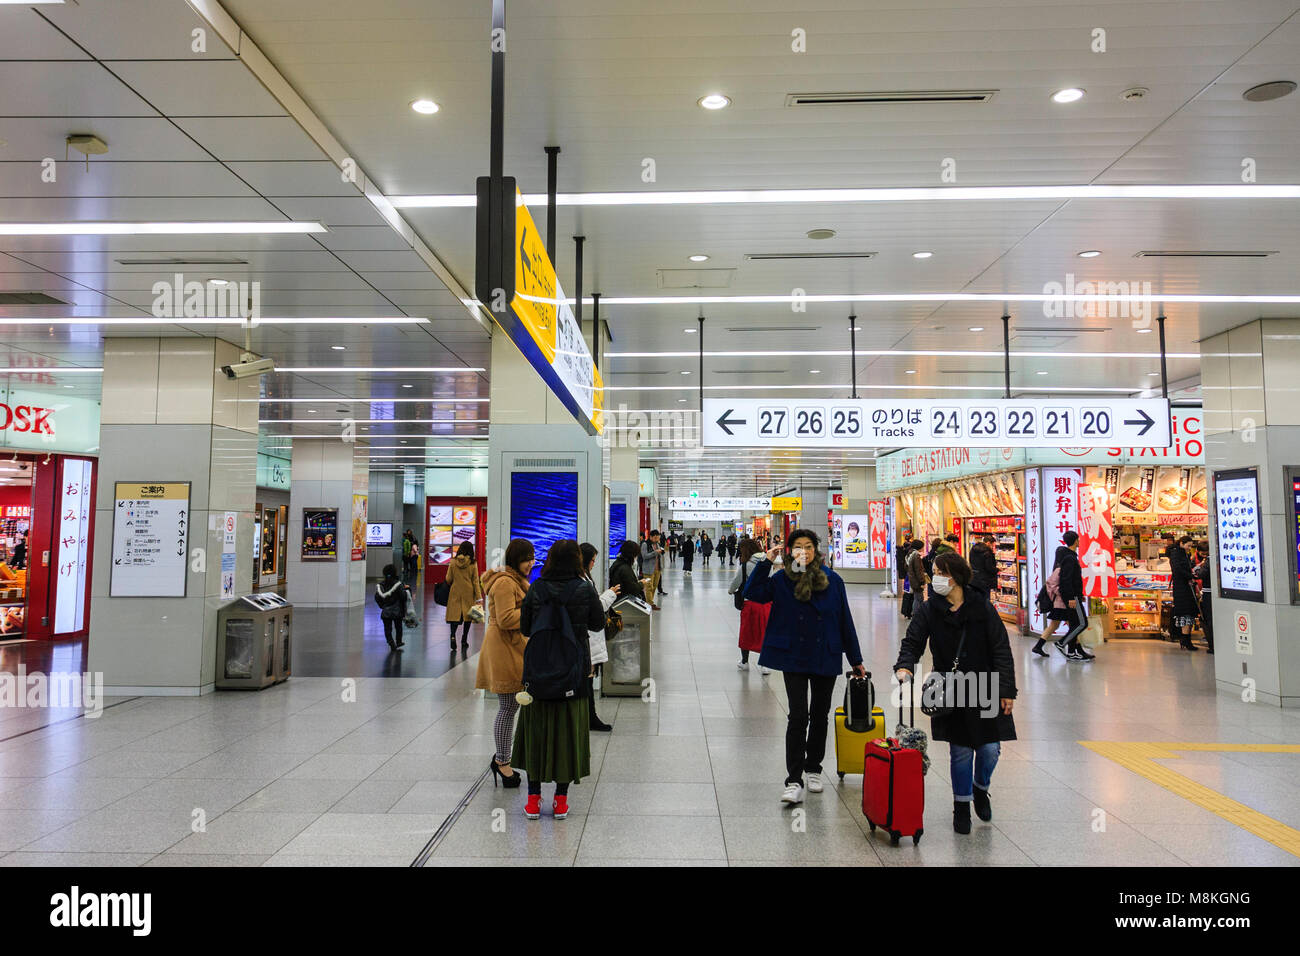 Japan, Shin-Osaka station. Interior of main station concourse in early morning when not very busy. Overhead signs - Stock Image